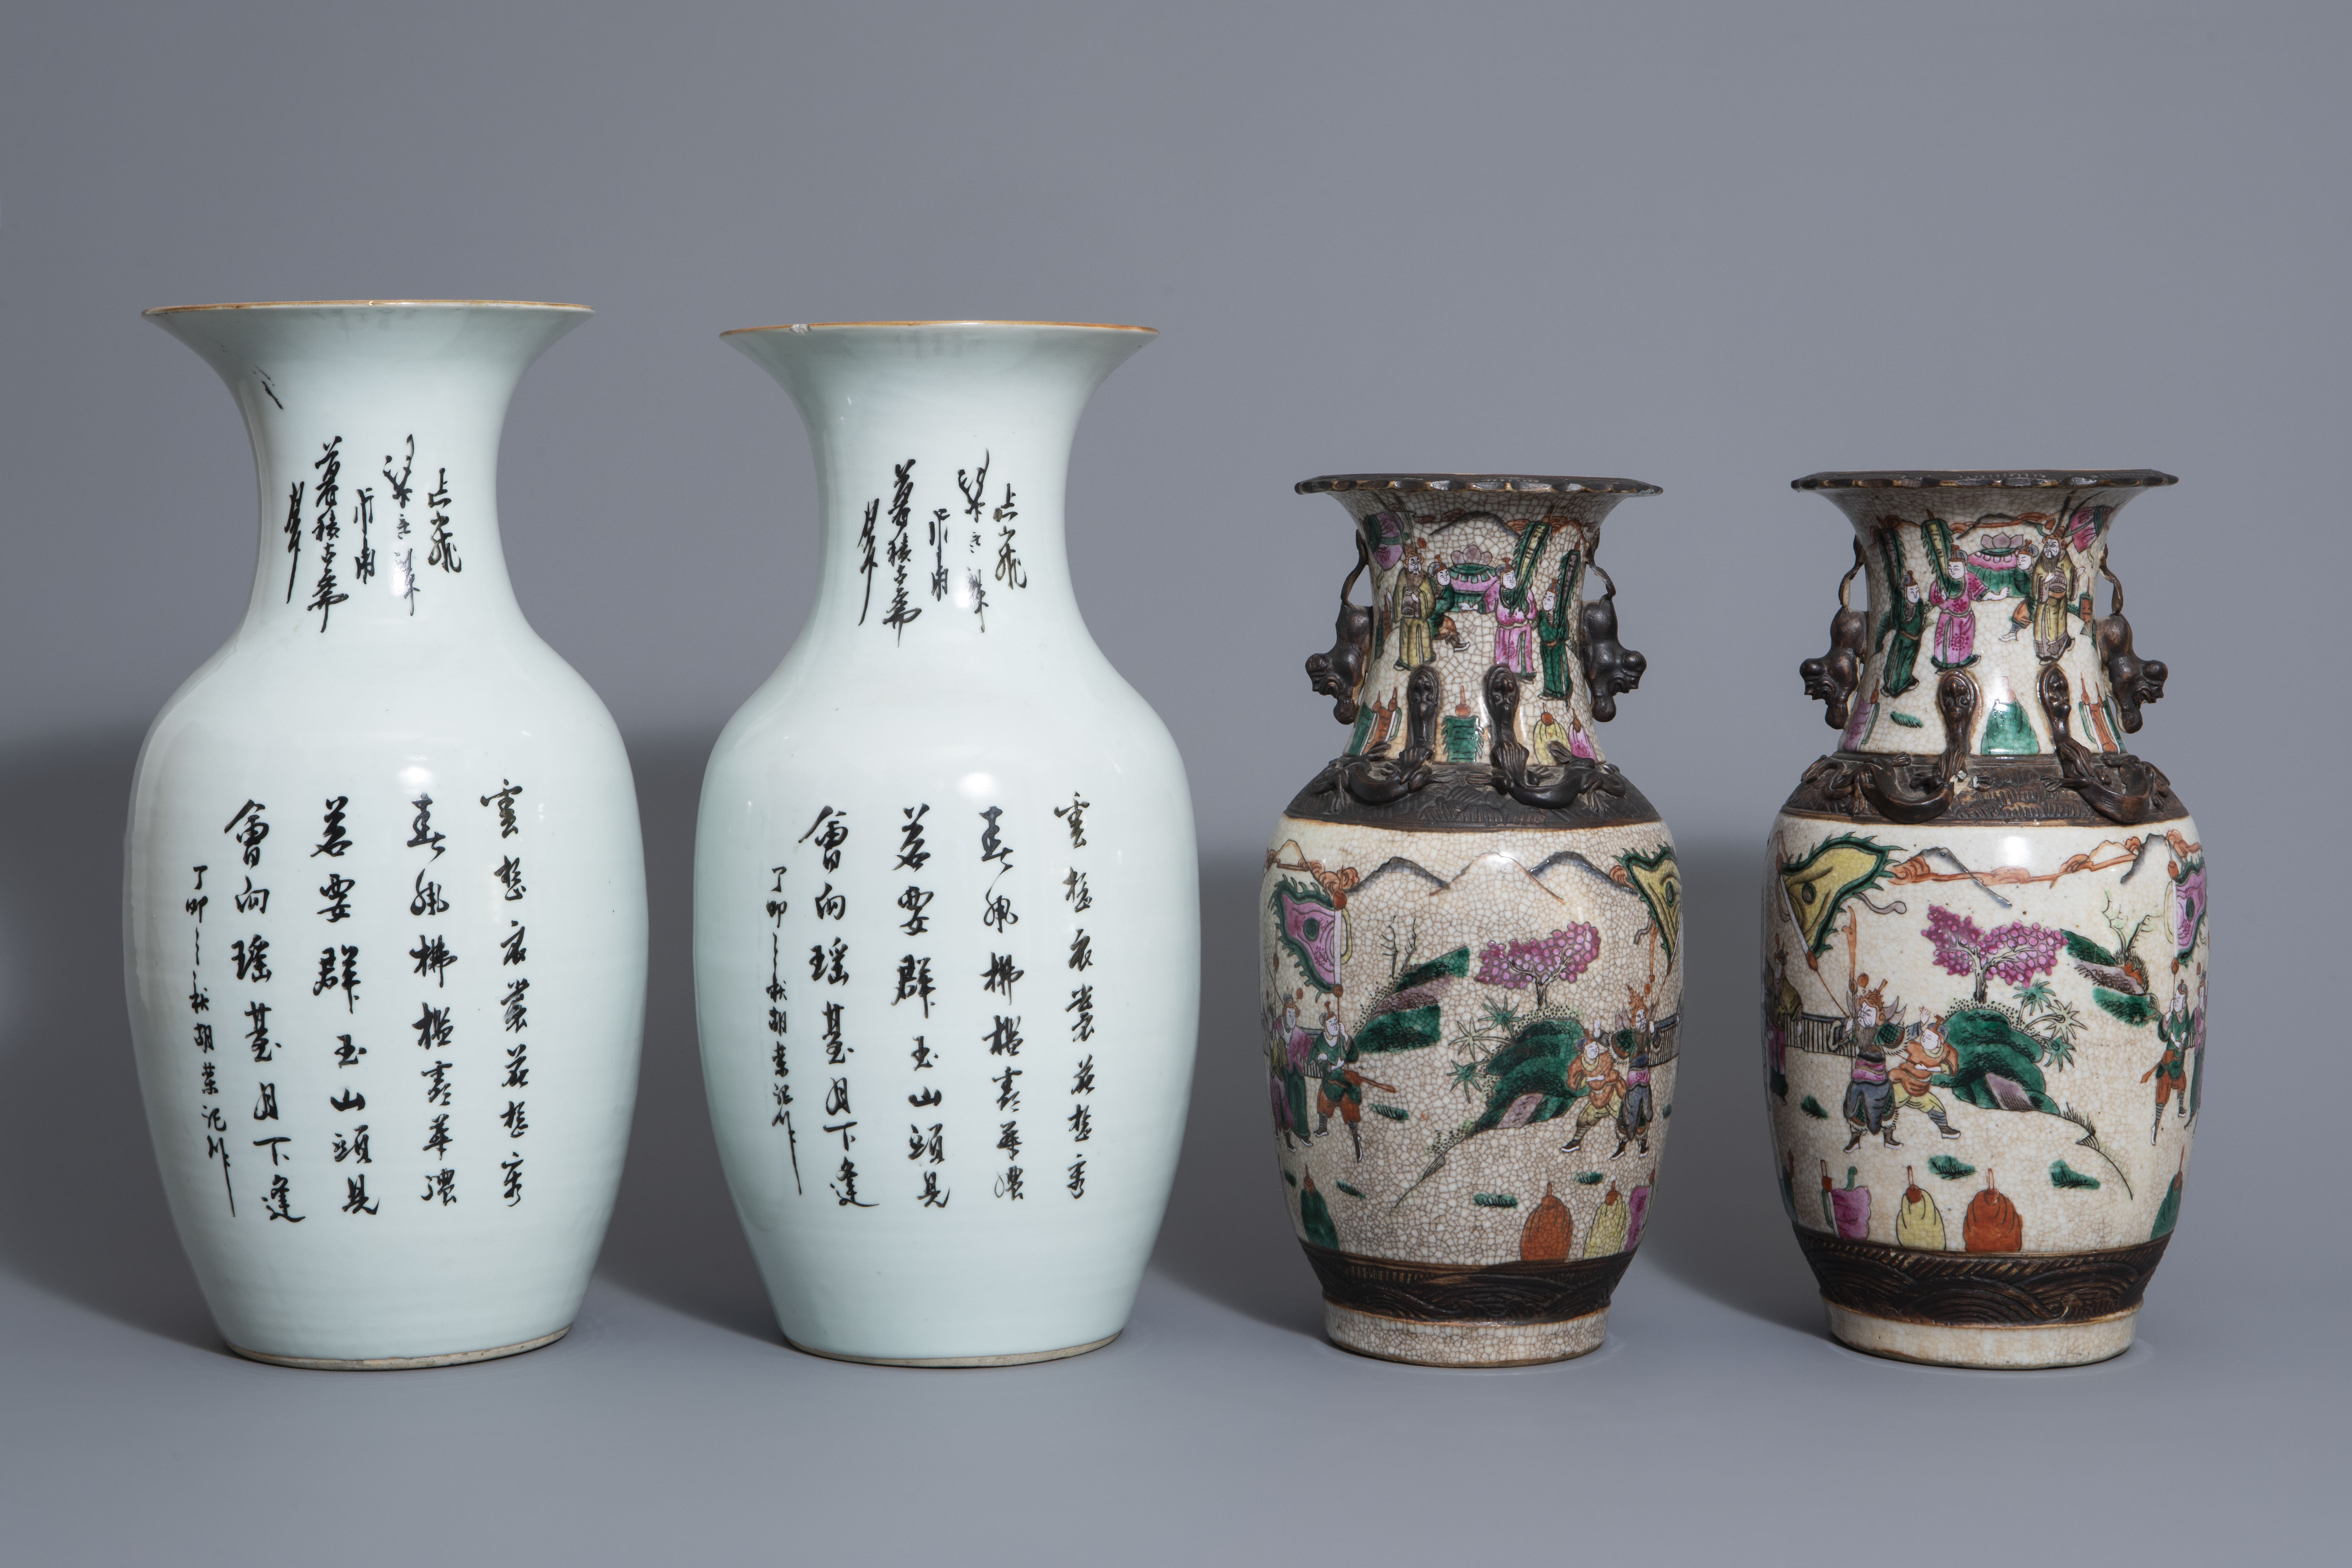 Two pairs of Chinese famille rose and Nanking crackle glazed vases, 19th/20th C. - Image 4 of 7